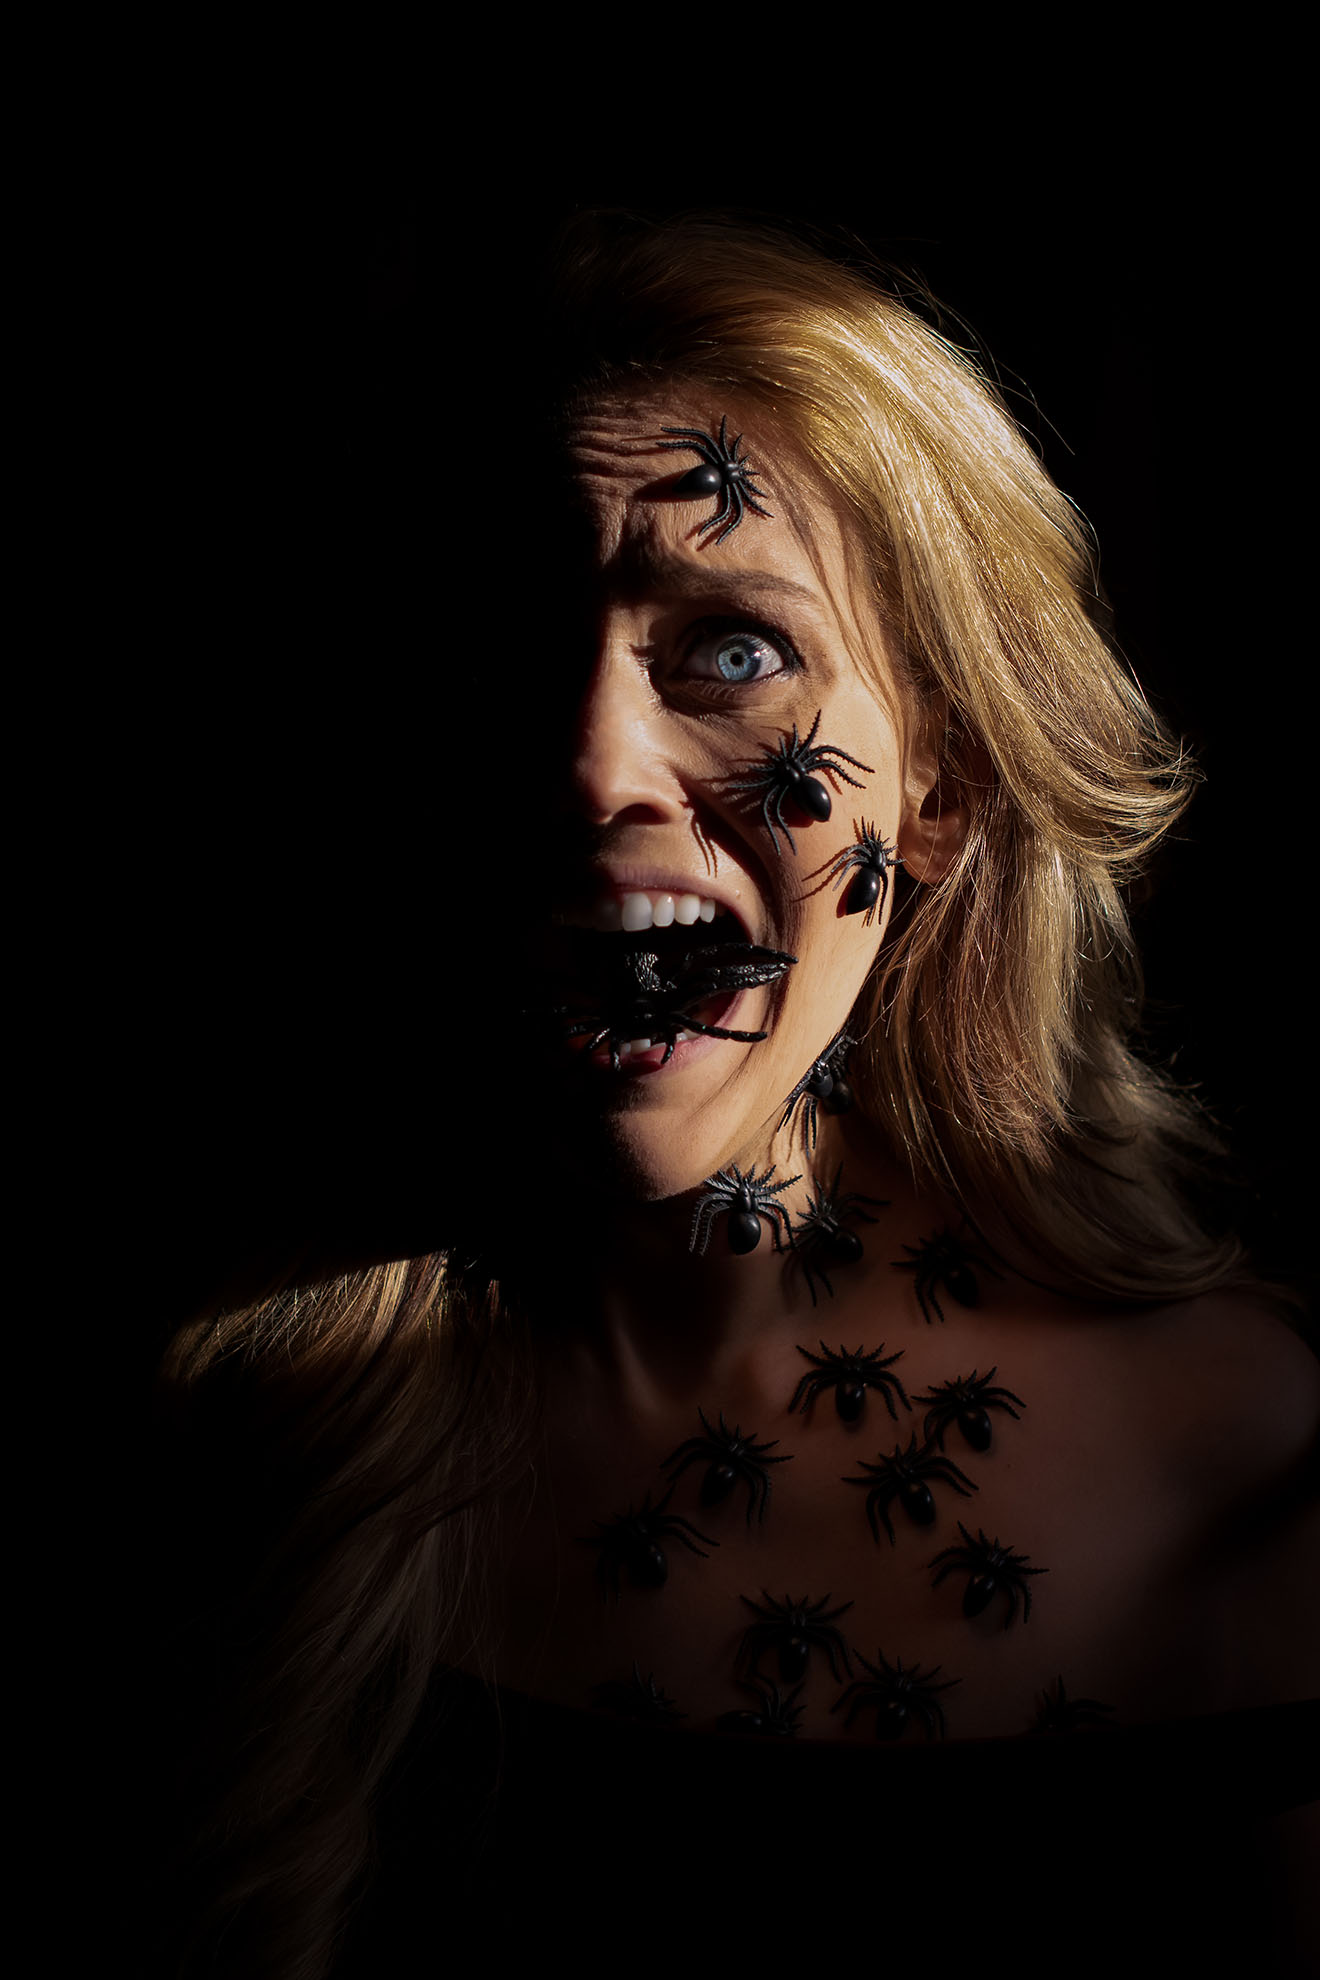 An emotive self portrait of a common nightmare, spiders crawling all over your body. A woman is covered in spiders and screams as one comes out of her mouth.